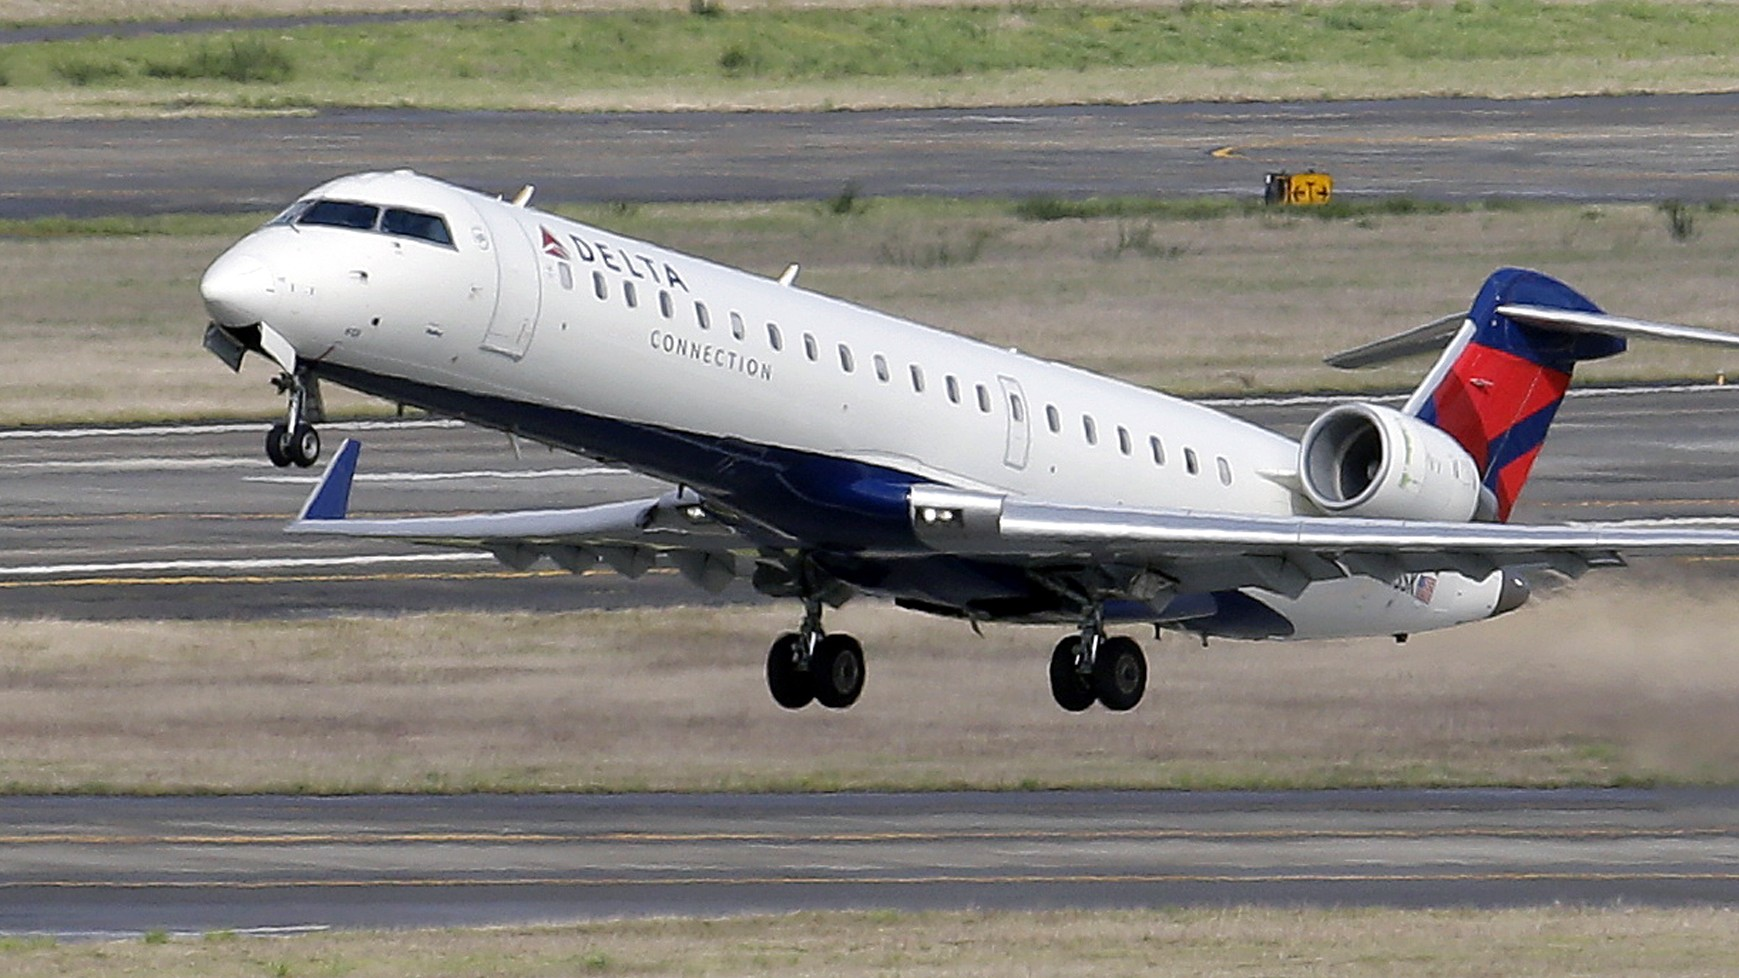 In this March 24, 2015 file photo, a Delta jet takes off from Seattle-Tacoma International Airport in SeaTac, Wash.